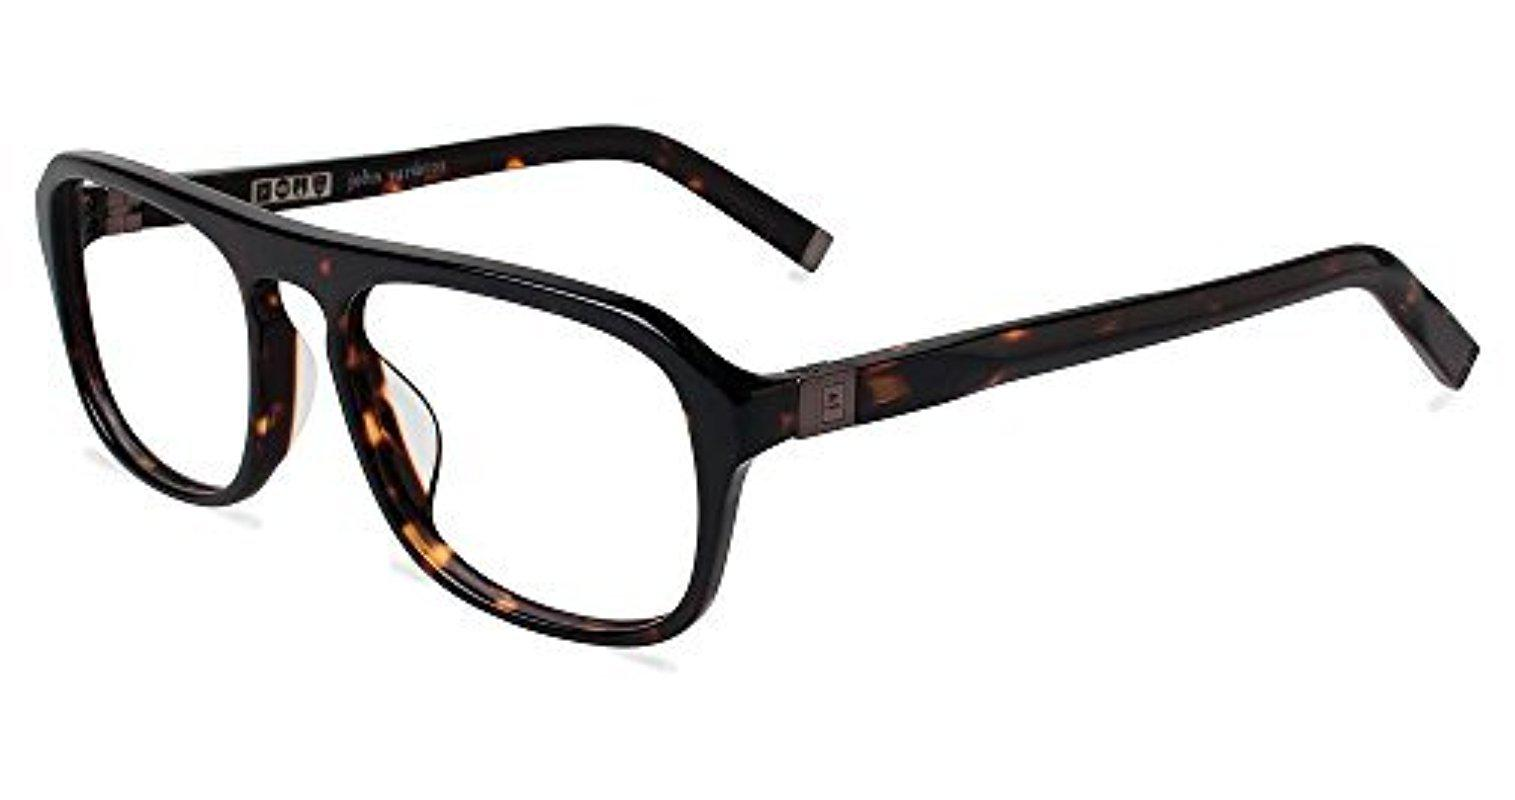 89ab5455da1 Lyst - John Varvatos Prescription Eyeglasses - V362 Uf Tortoise - 55 ...